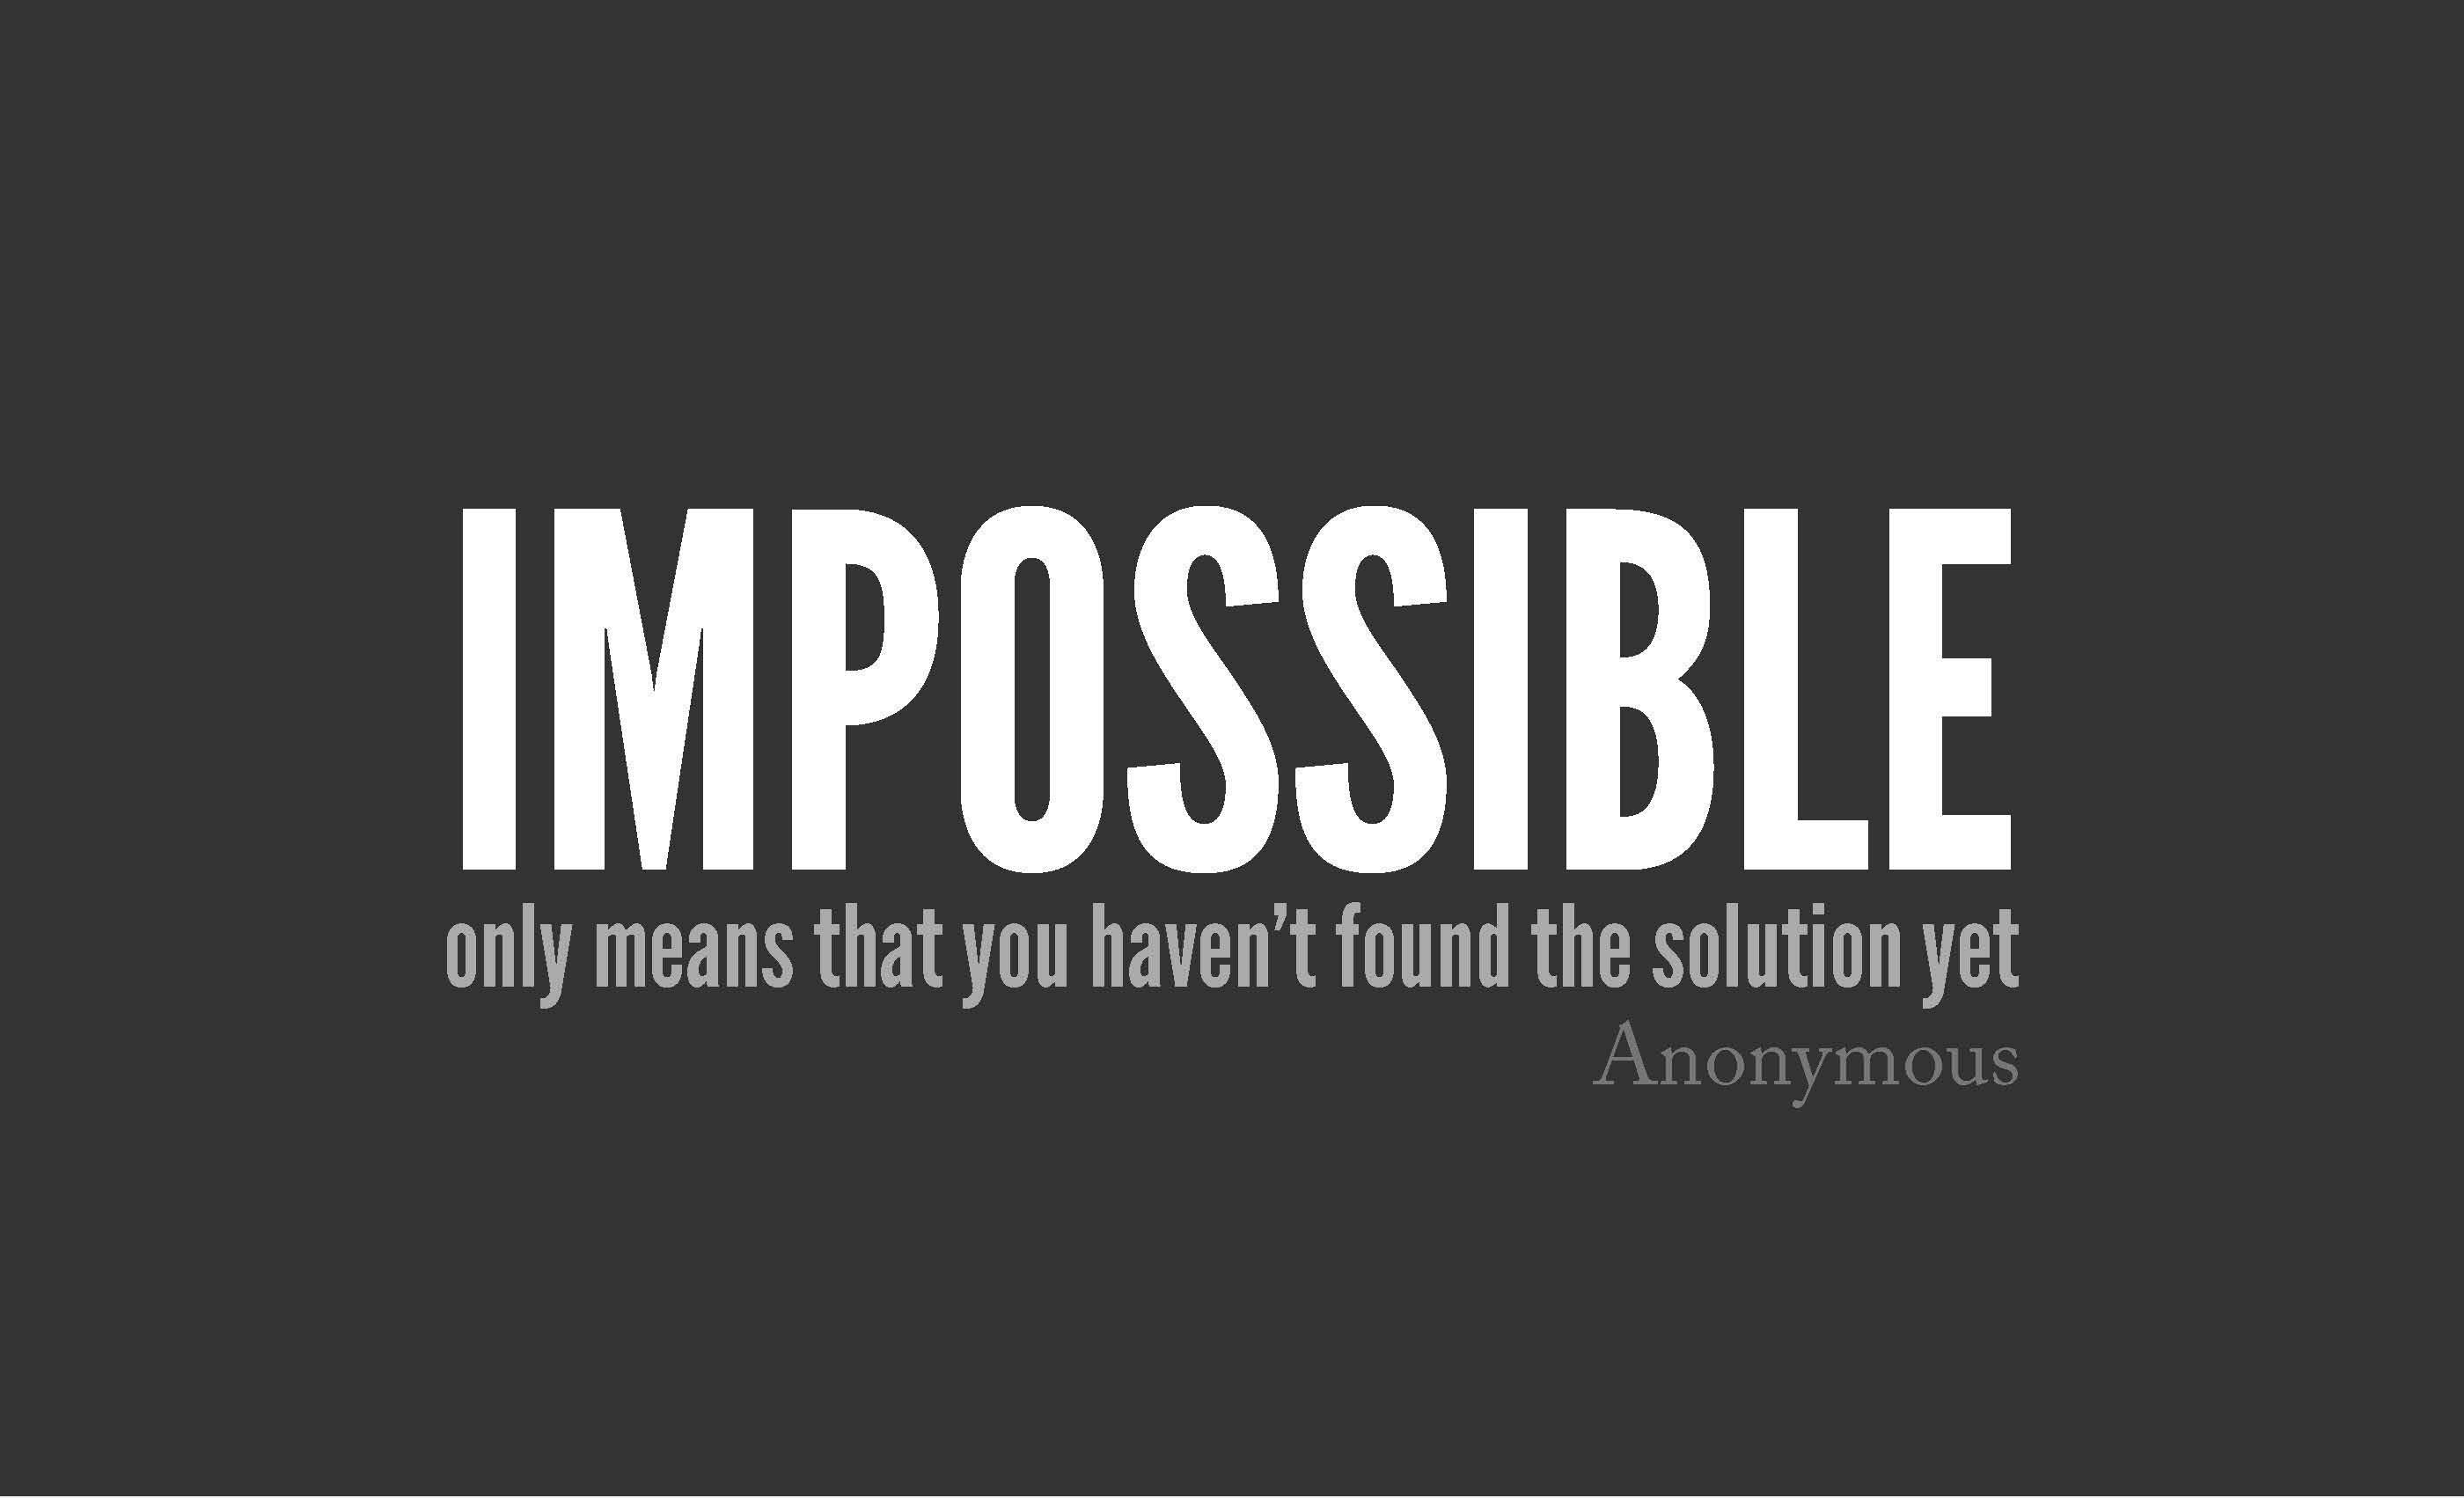 Business Quotes impossible only means that you haven't found the solution yet